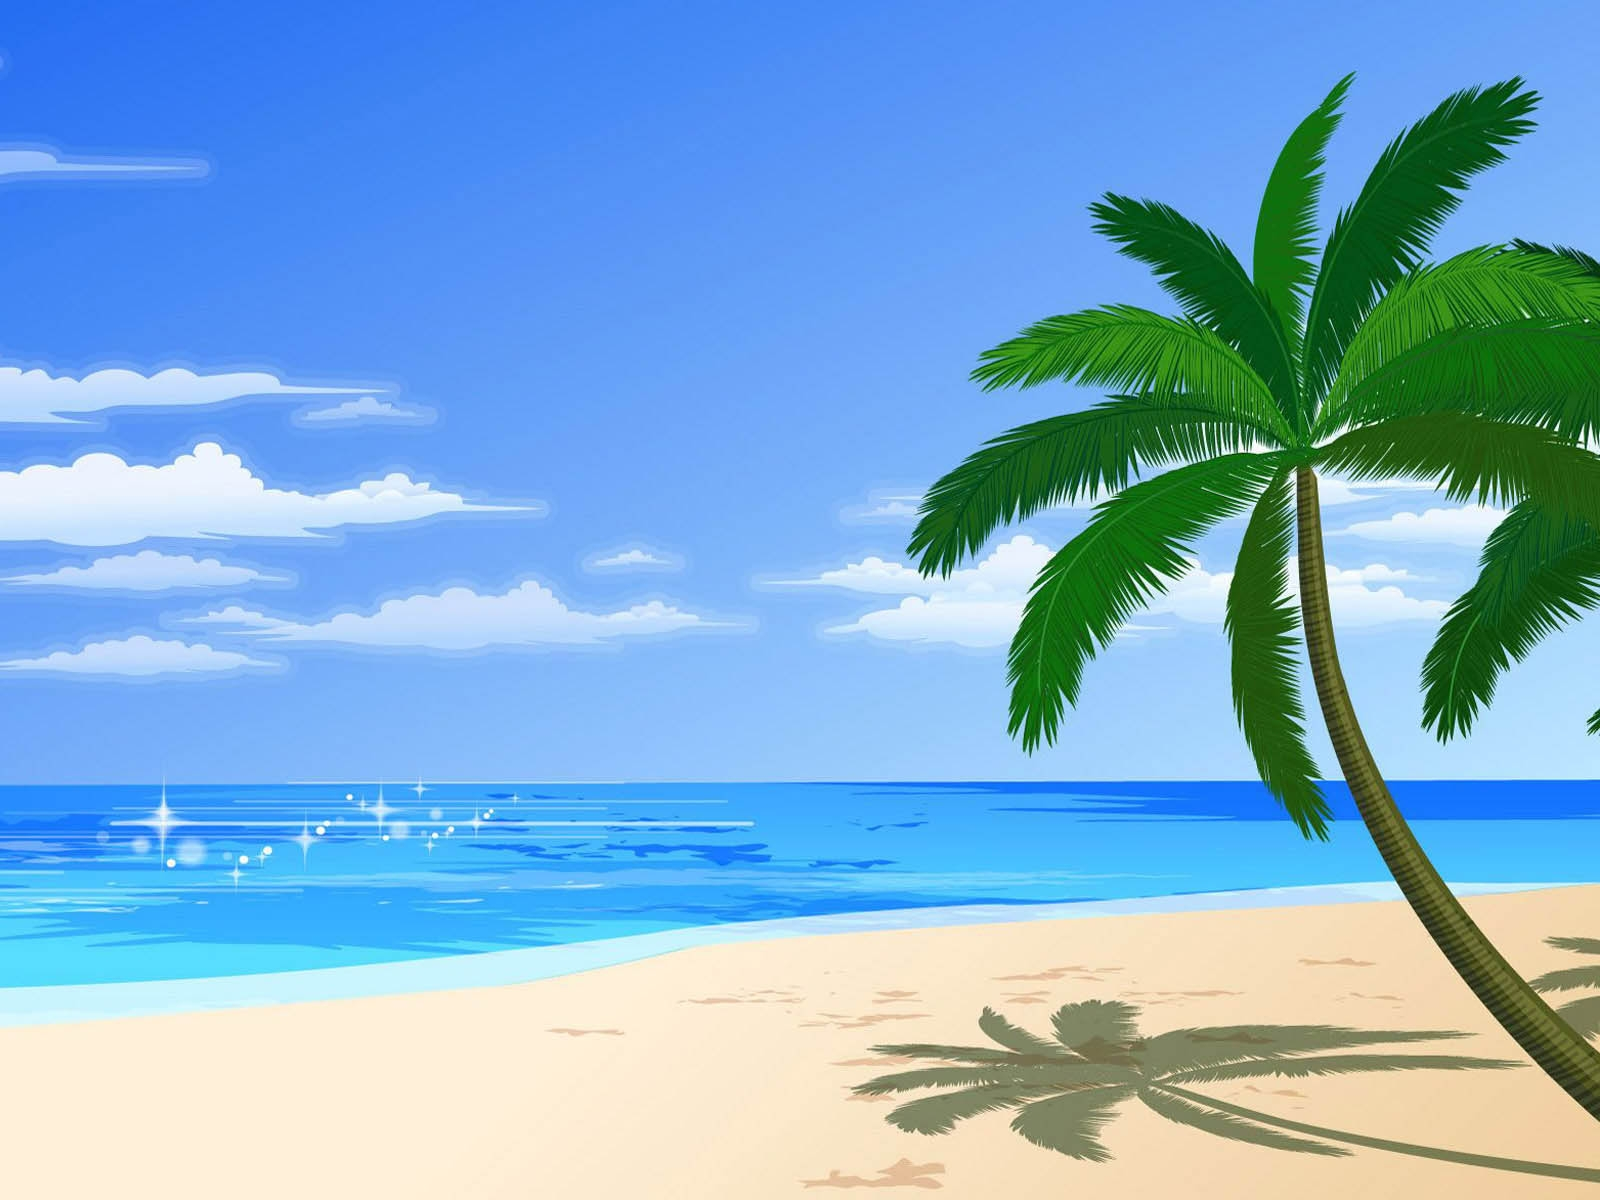 Beach background clipart free graphic download Free Summer Backgrounds Cliparts, Download Free Clip Art, Free Clip ... graphic download